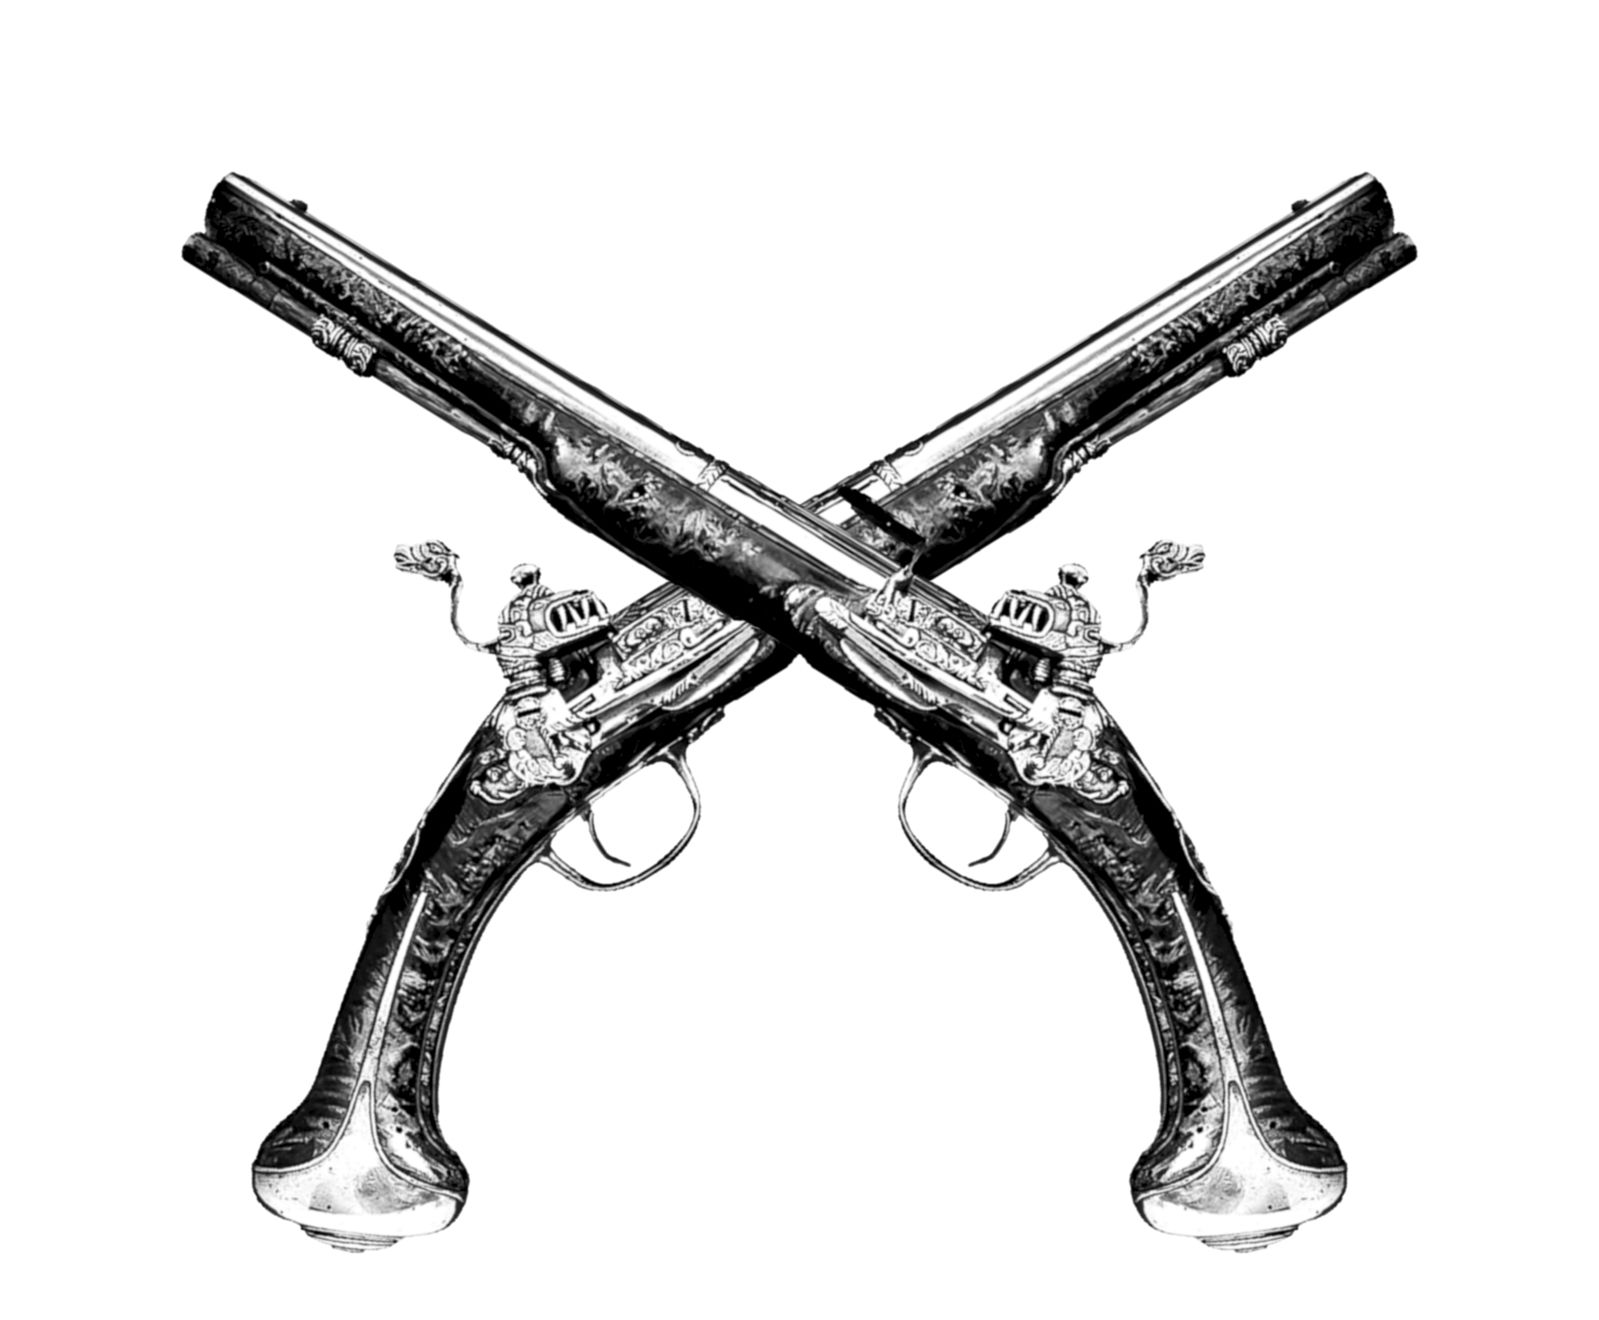 sweet antique pistols vroomvroom pinterest guns firearms and Revolver Carbine sweet antique pistols